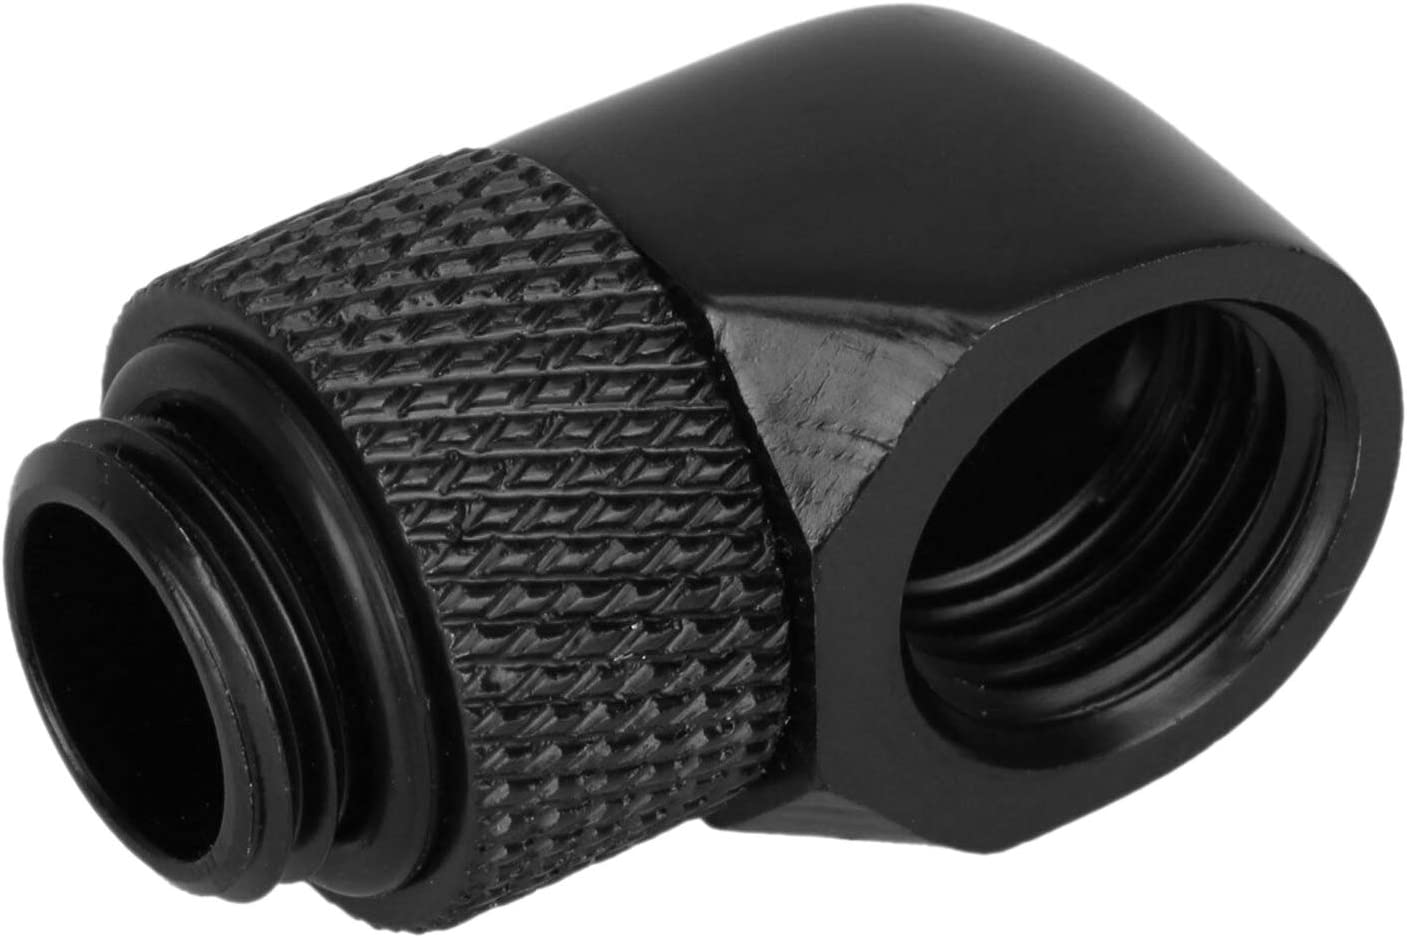 Luntus 12.9Mm G1//4 Thread 90 Degree Rotary Tube Fitting for Pc Water Cooling Black